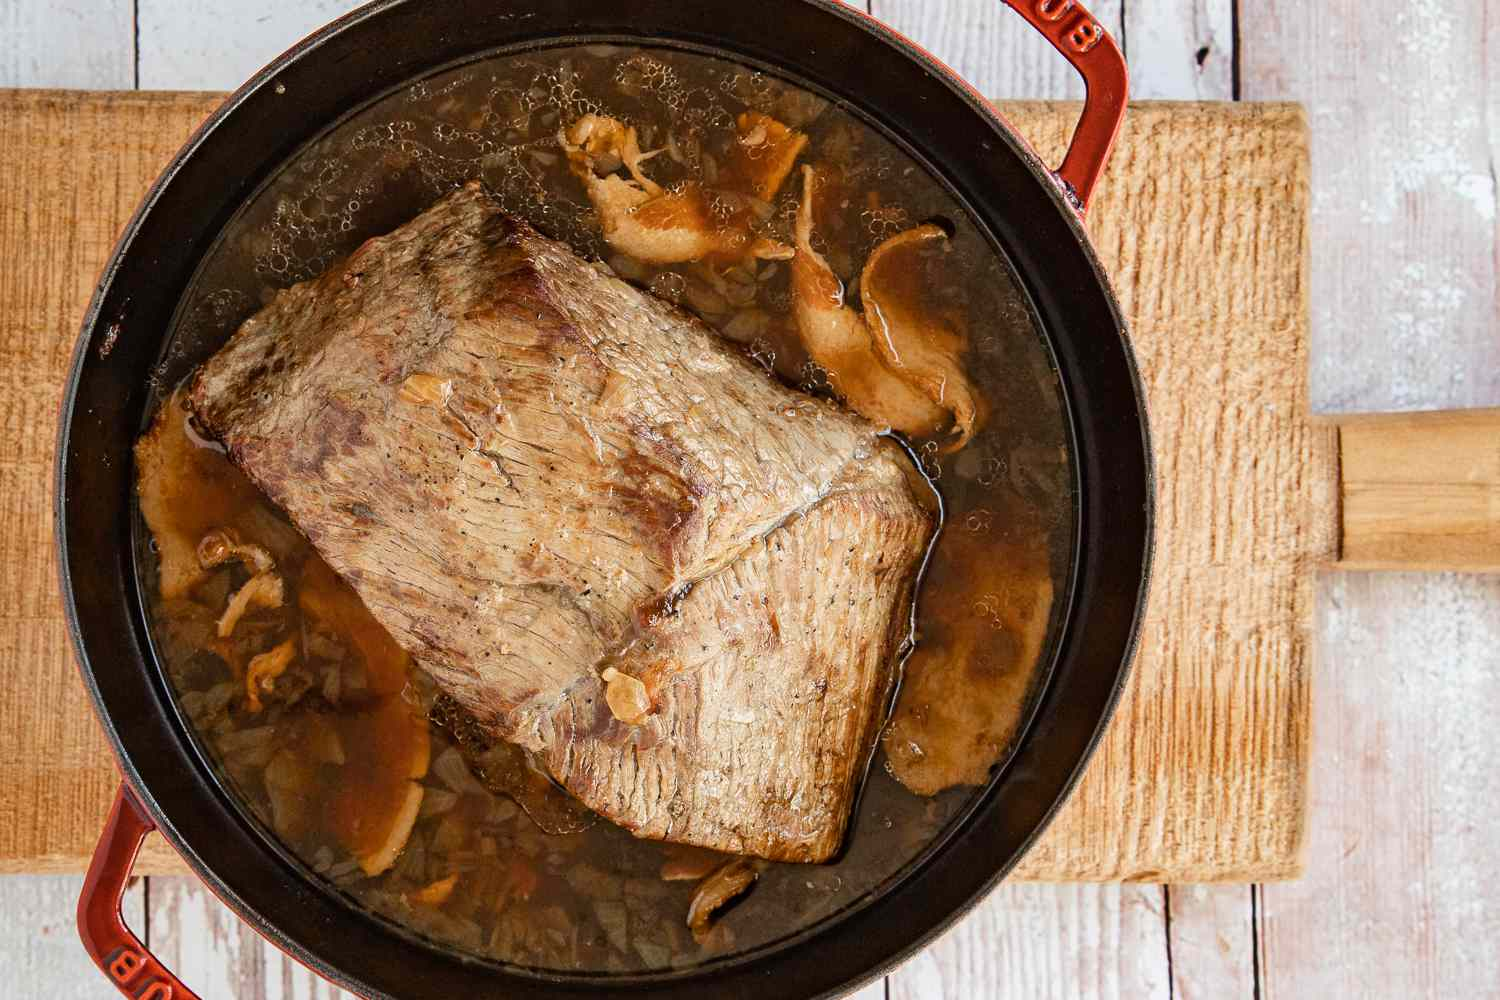 pot roast cooking in a Dutch oven